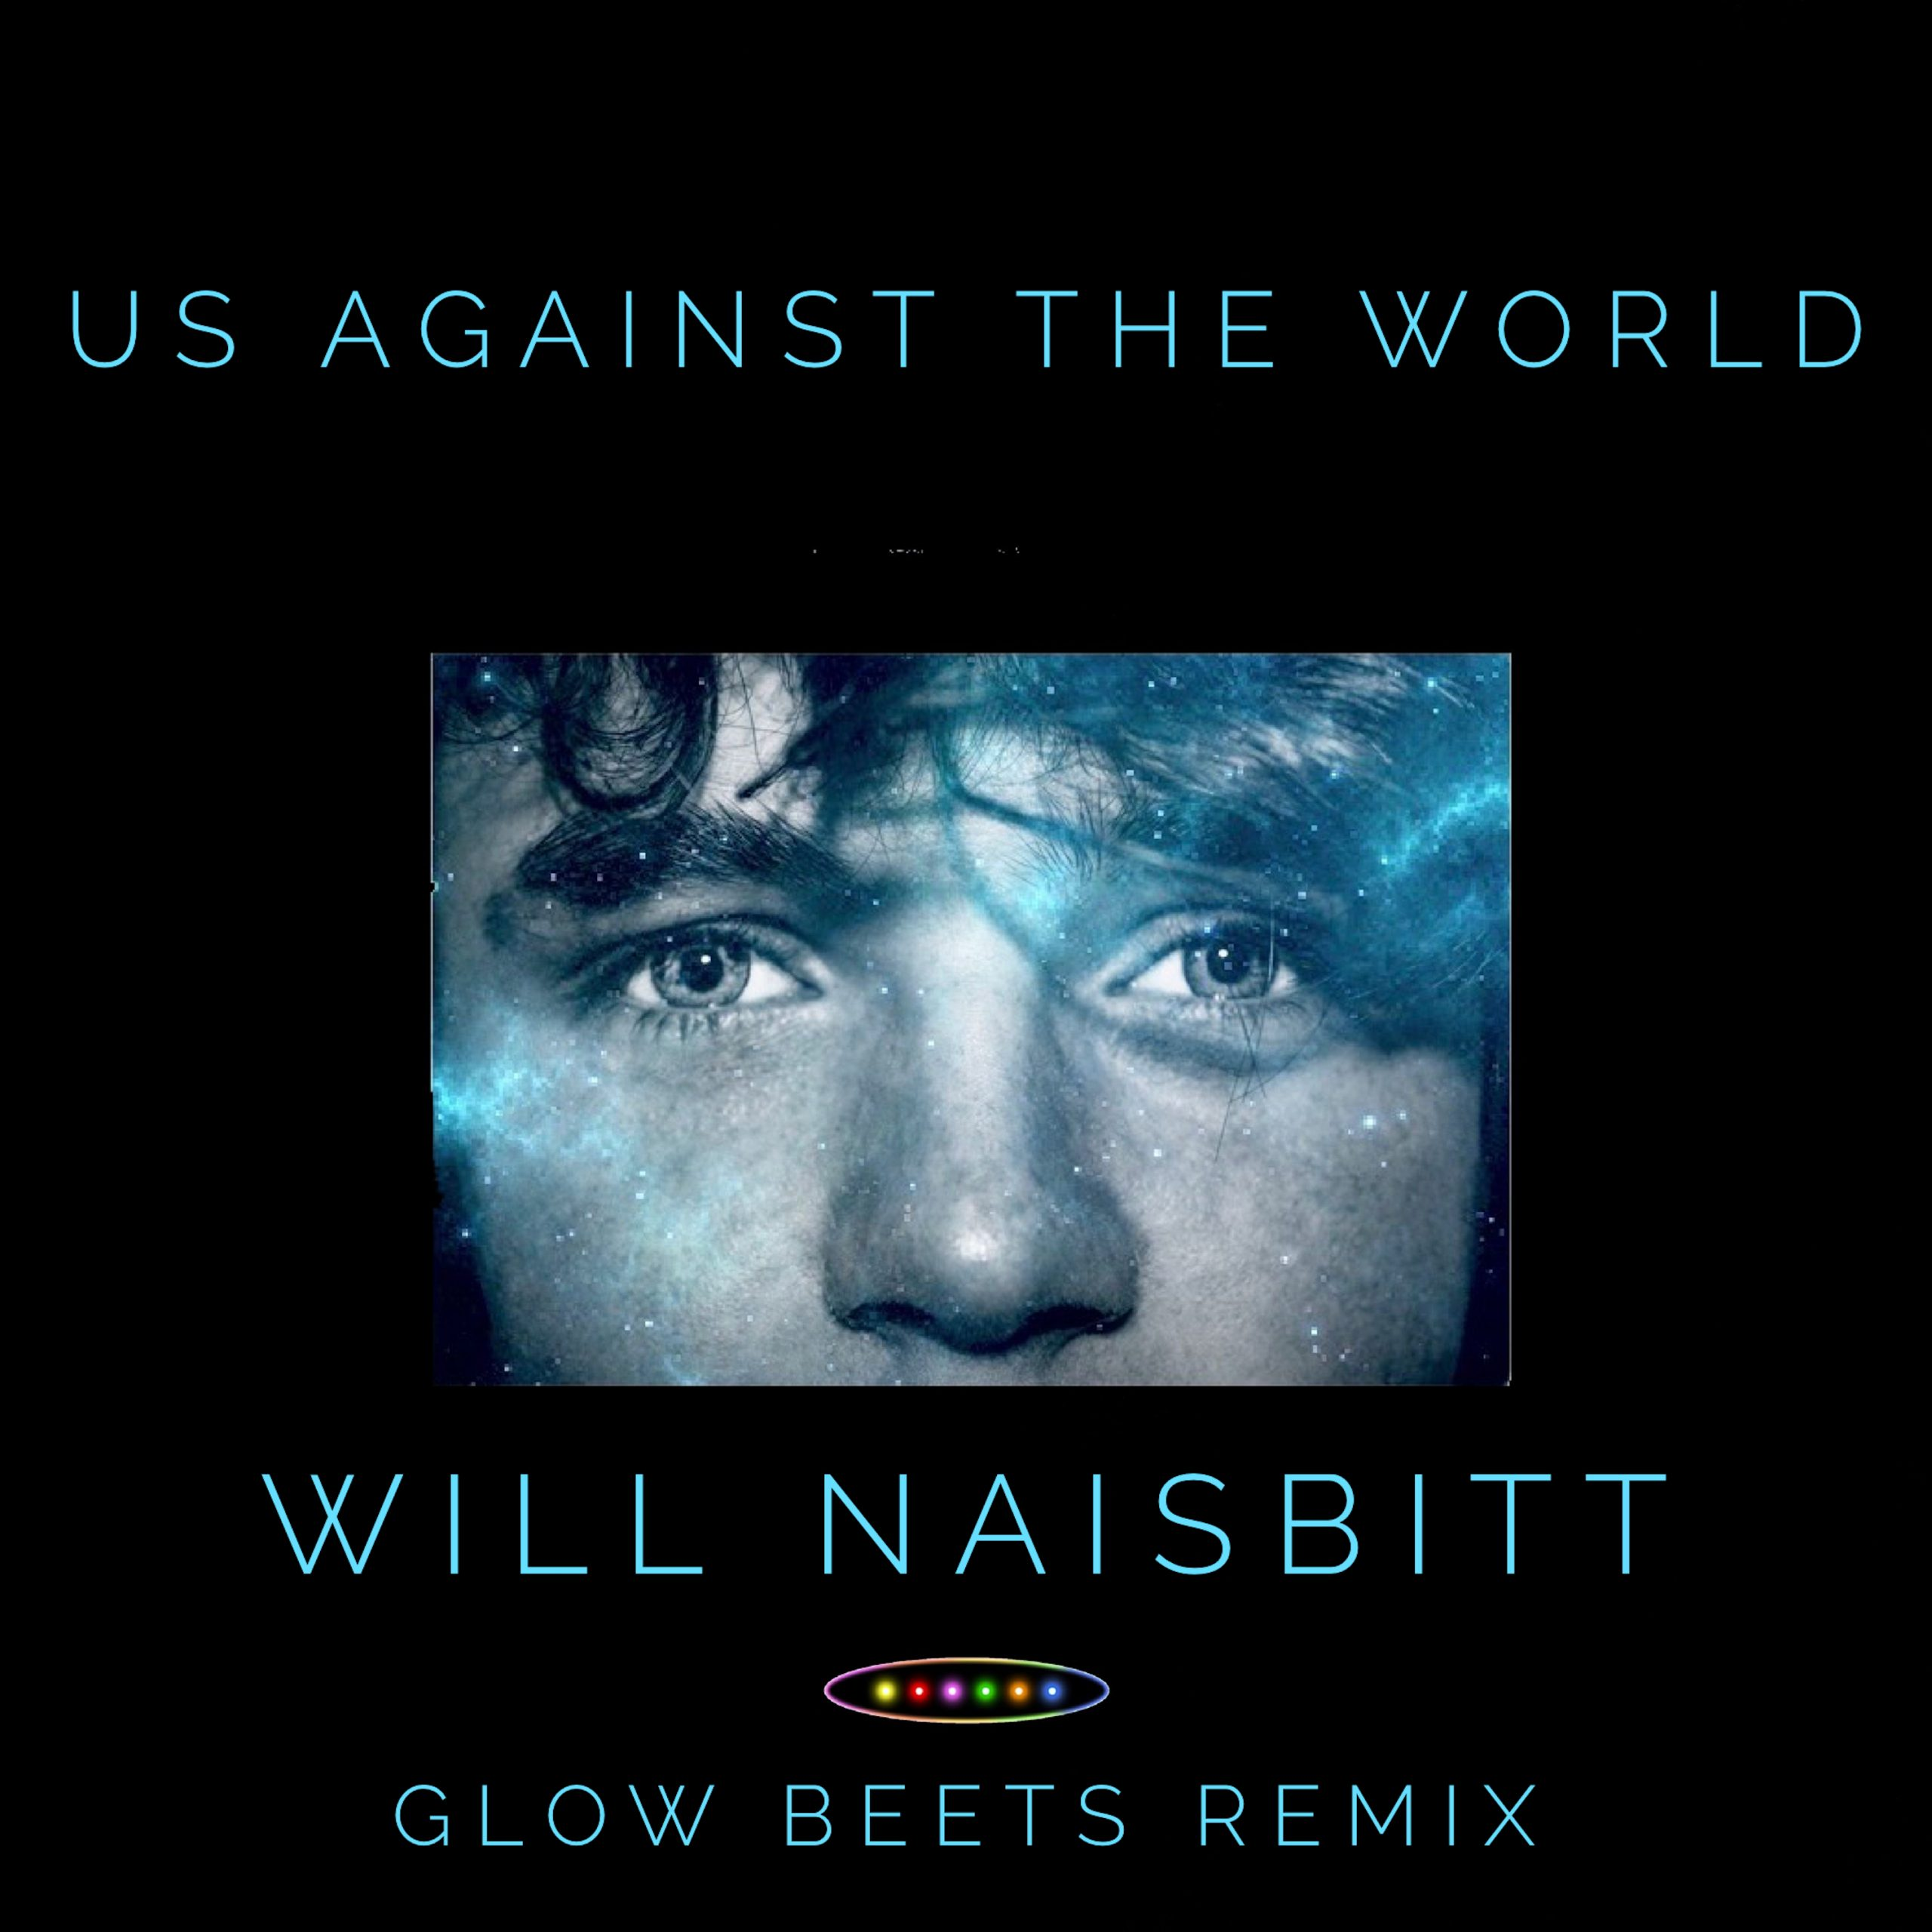 Glow Beets // Us Against The World - single remix cover